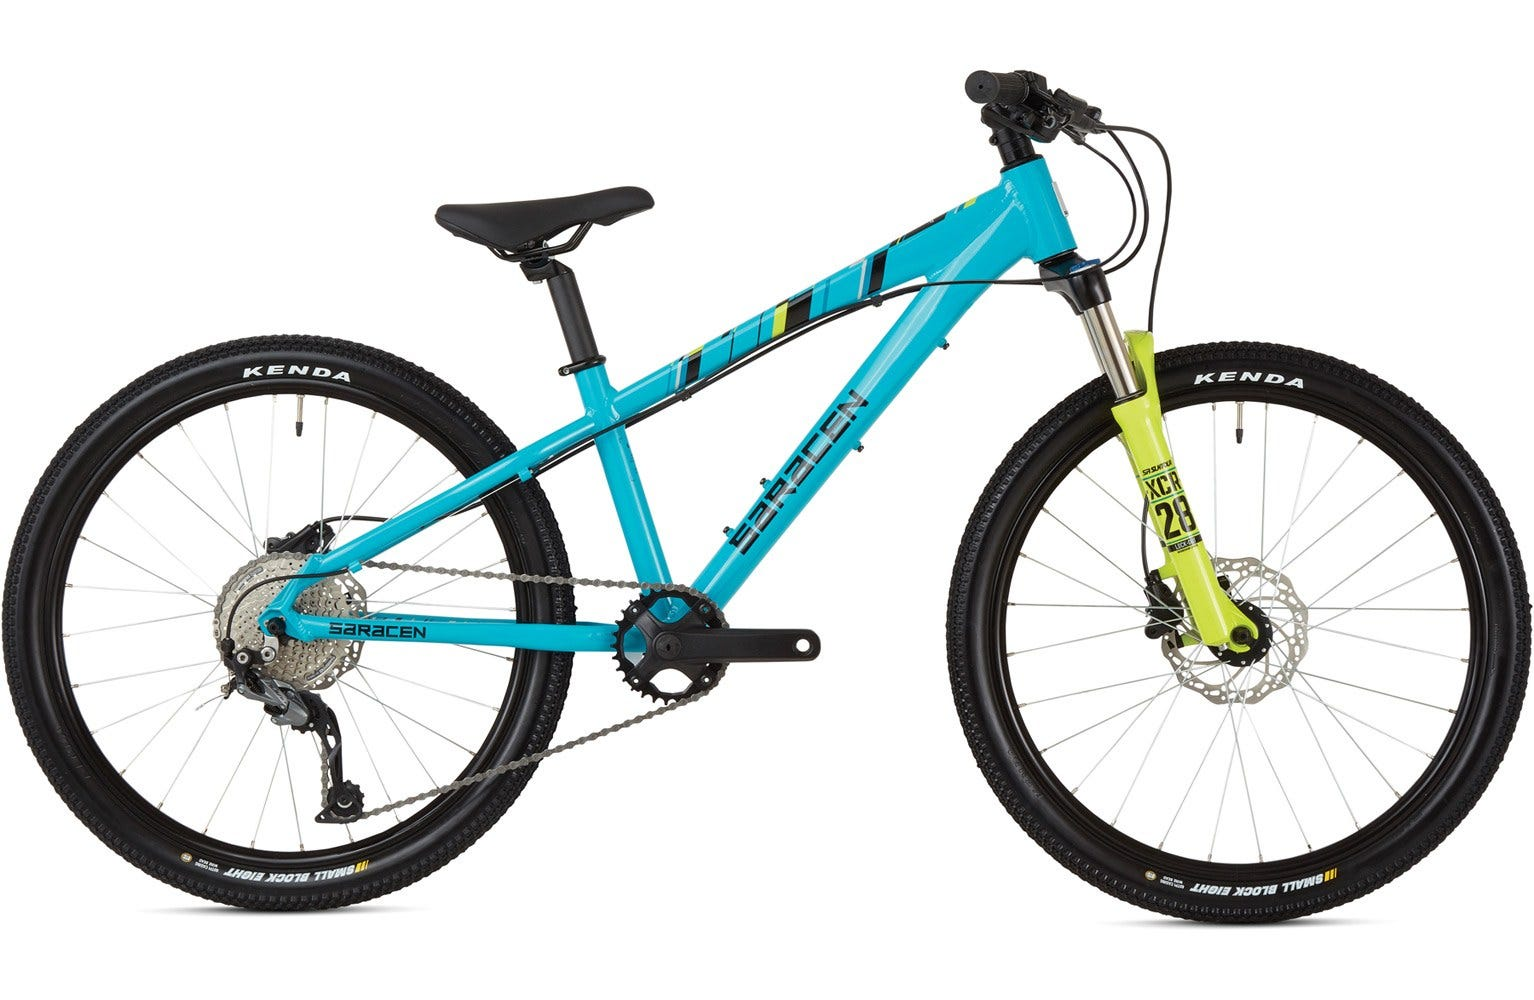 Saracen Mantra 24 inch bike sample (unused)